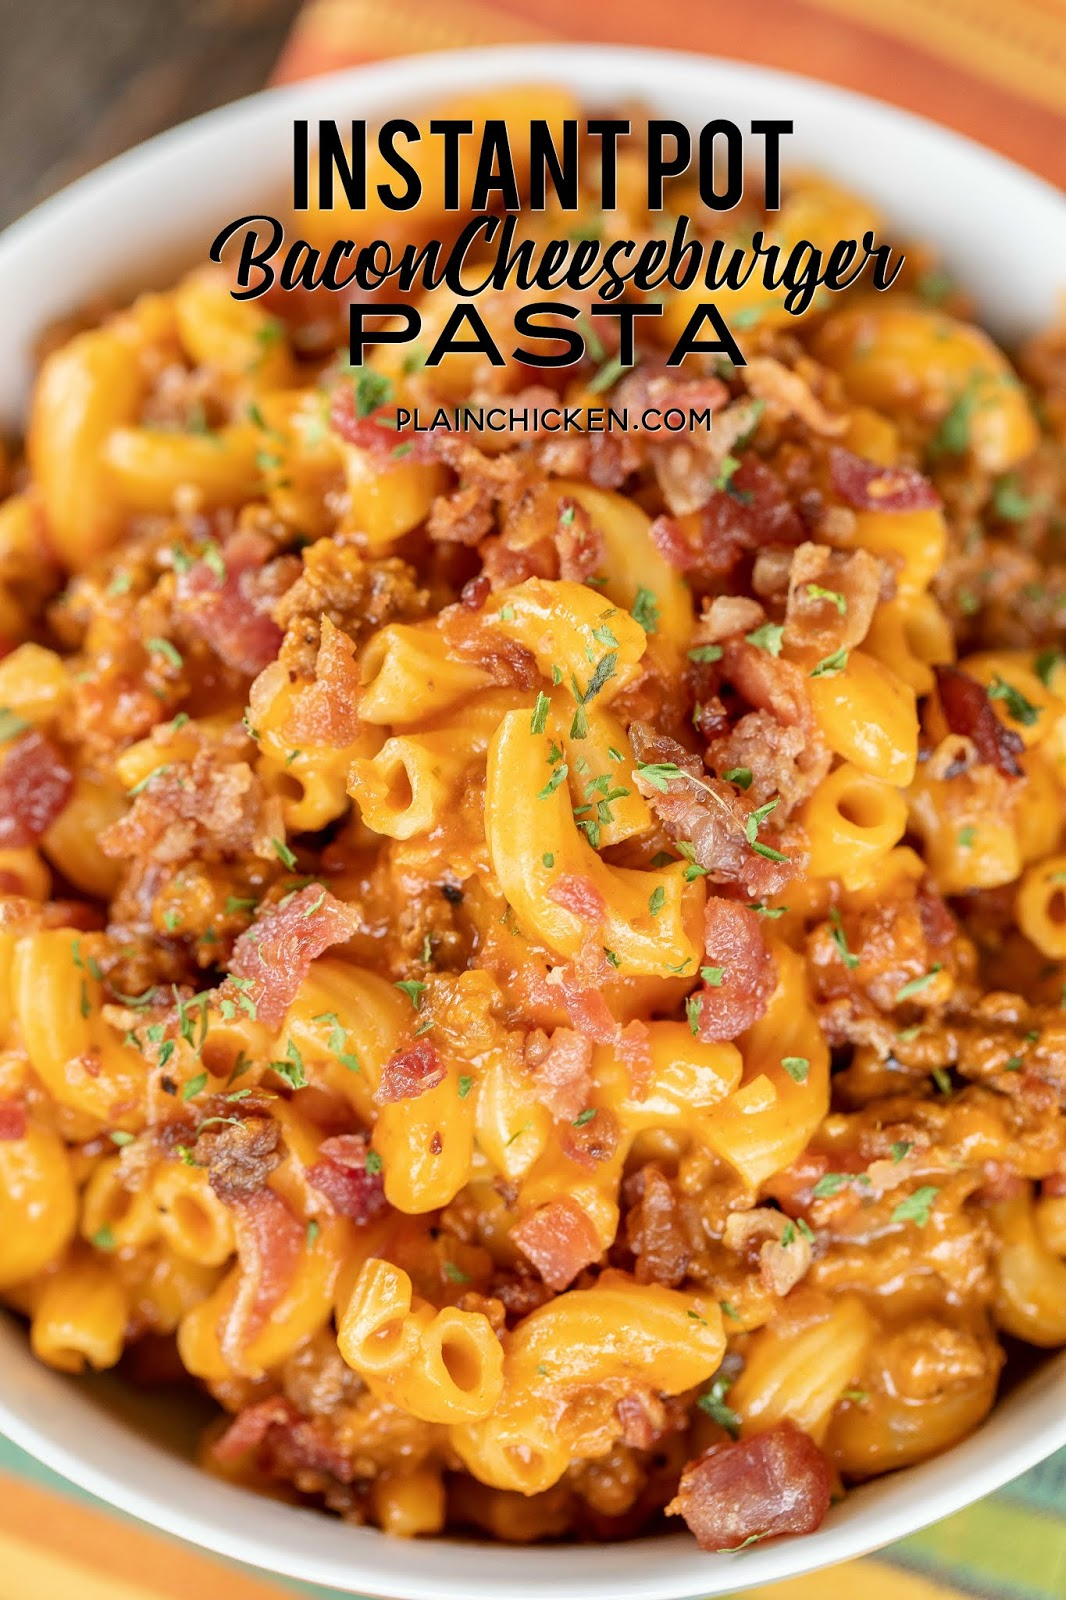 Instant Pot Bacon Cheeseburger Pasta - a weeknight family favorite! Just cook the ground beef, add the pasta and liquids, cook for 4 minutes then stir in the cheese and bacon. Super easy!!! Ground beef, tomato juice, beef broth, Worcestershire sauce, steak seasoning, ketchup, mustard, elbow macaroni, bacon and cheddar cheese. Our whole family LOVED this easy pasta recipe! It is definitely going into the rotation. #Instantpot #beef #pasta #cheese